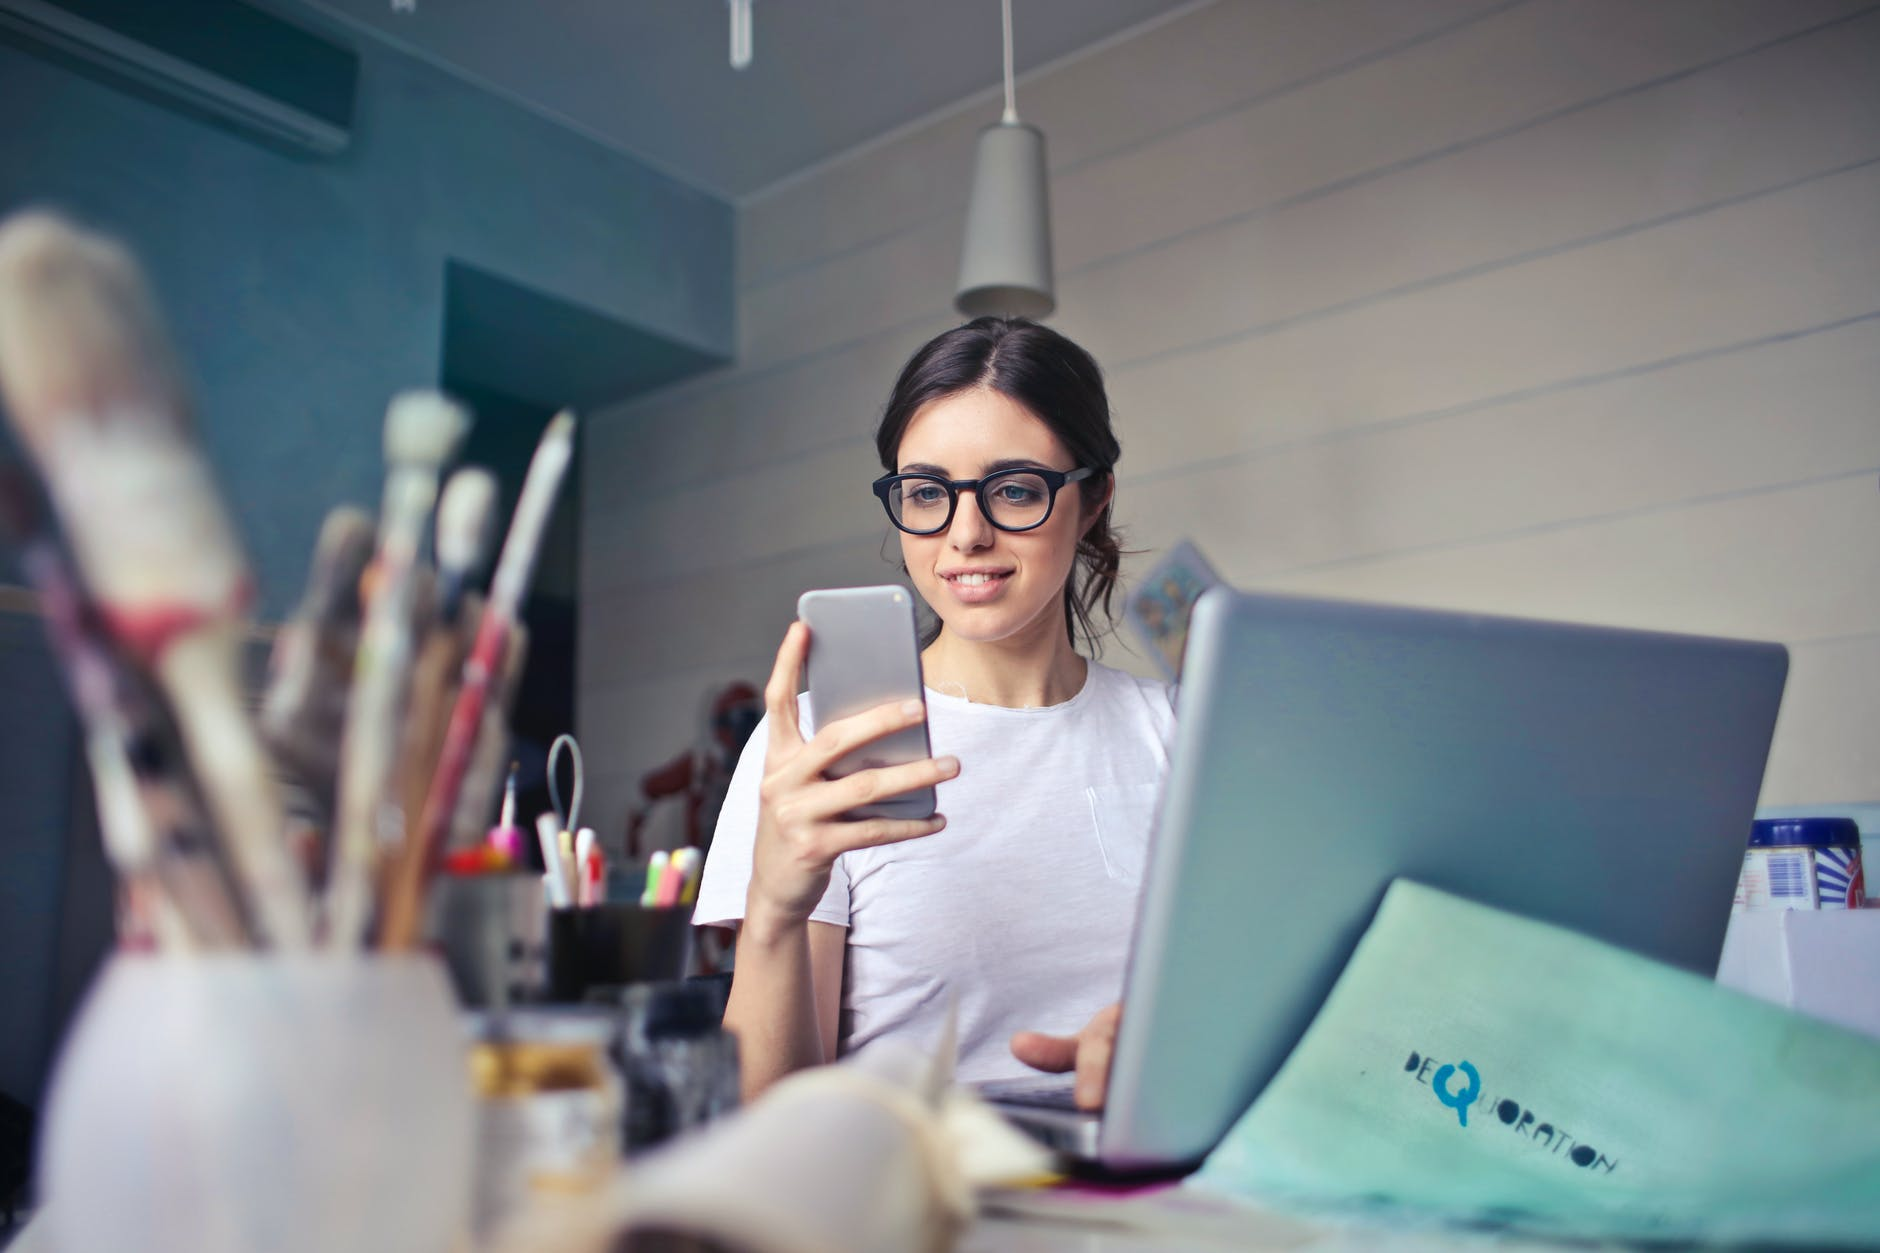 woman in white t shirt holding smartphone in front of laptop